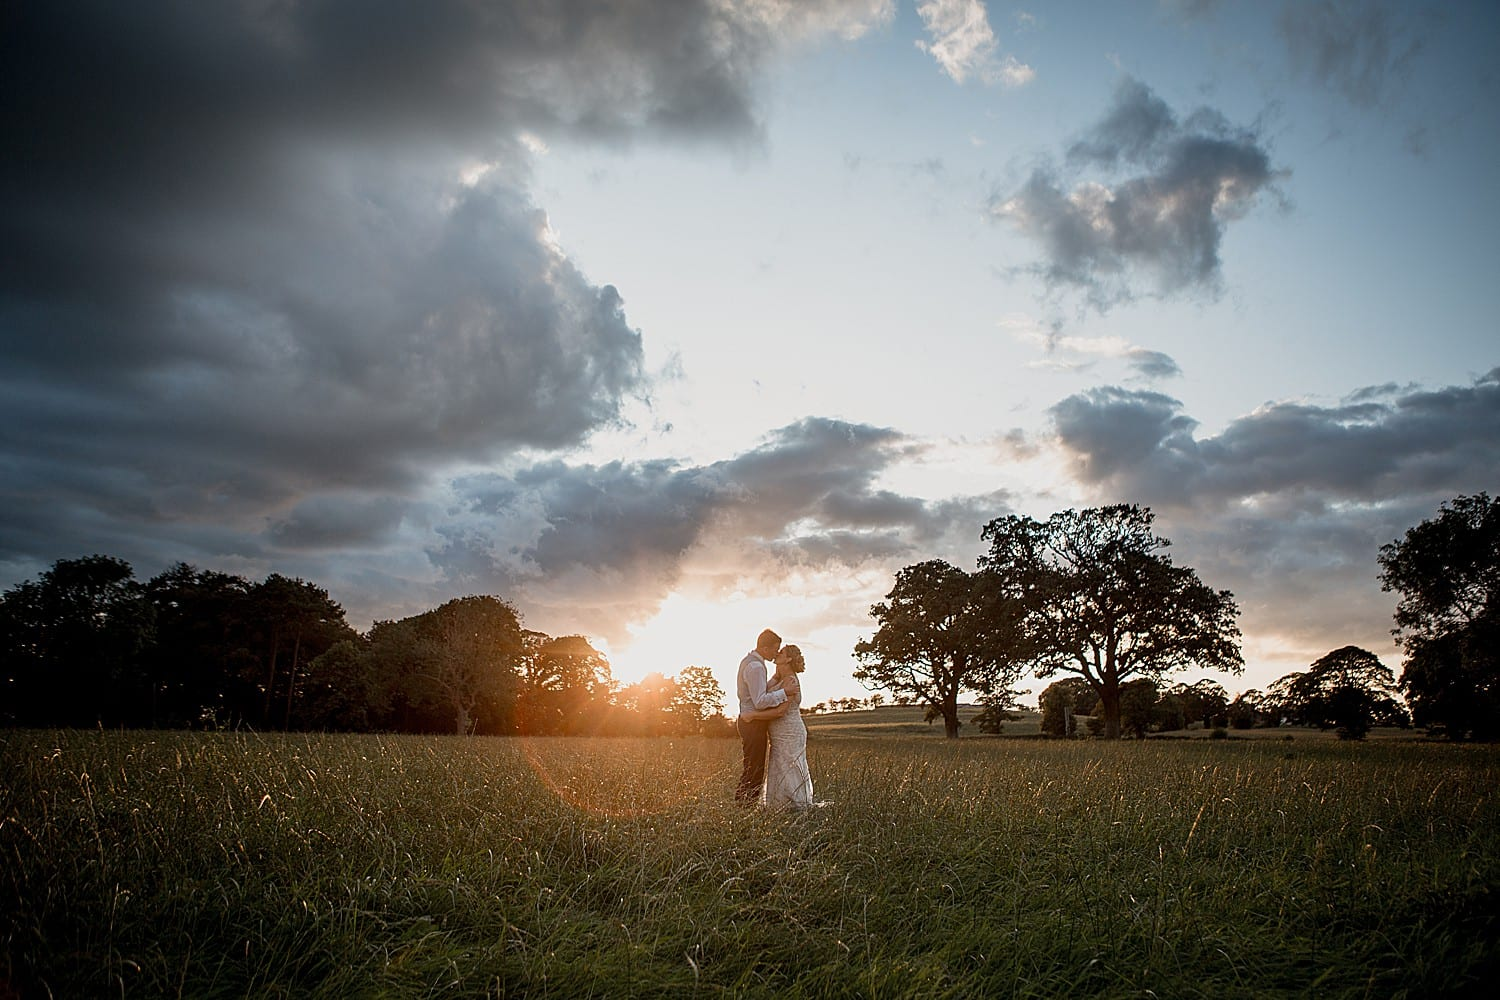 buddileigh farm wedding photography